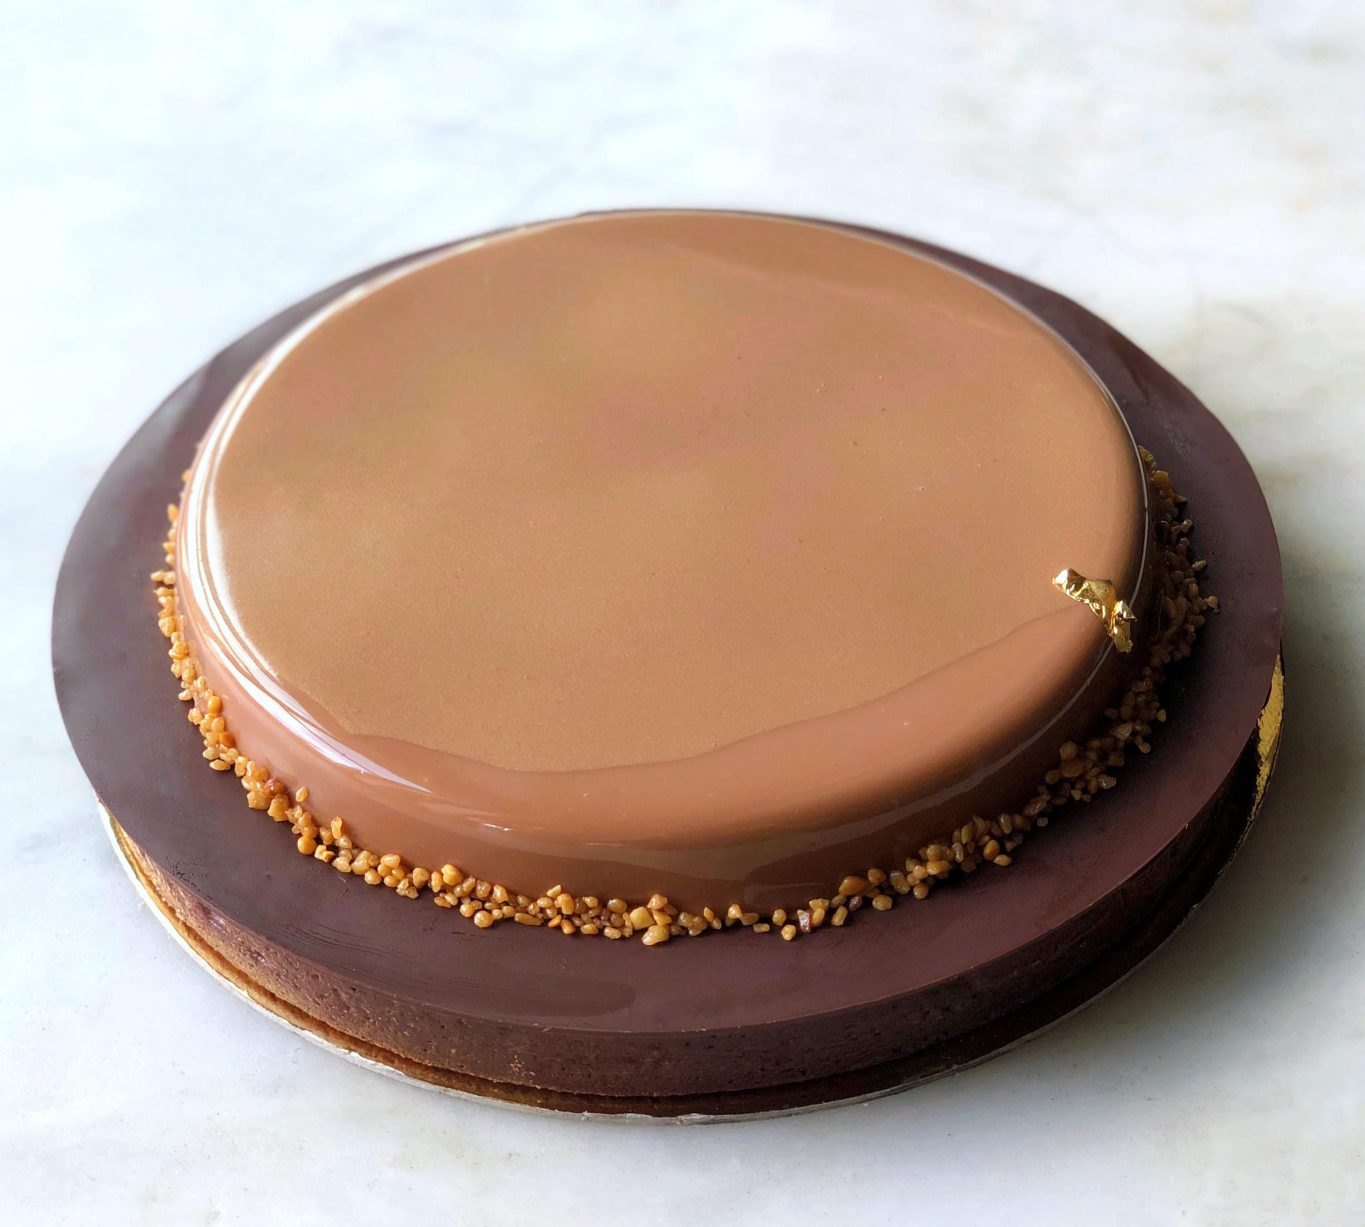 DAB Large liquid praline caramel chocolate tart